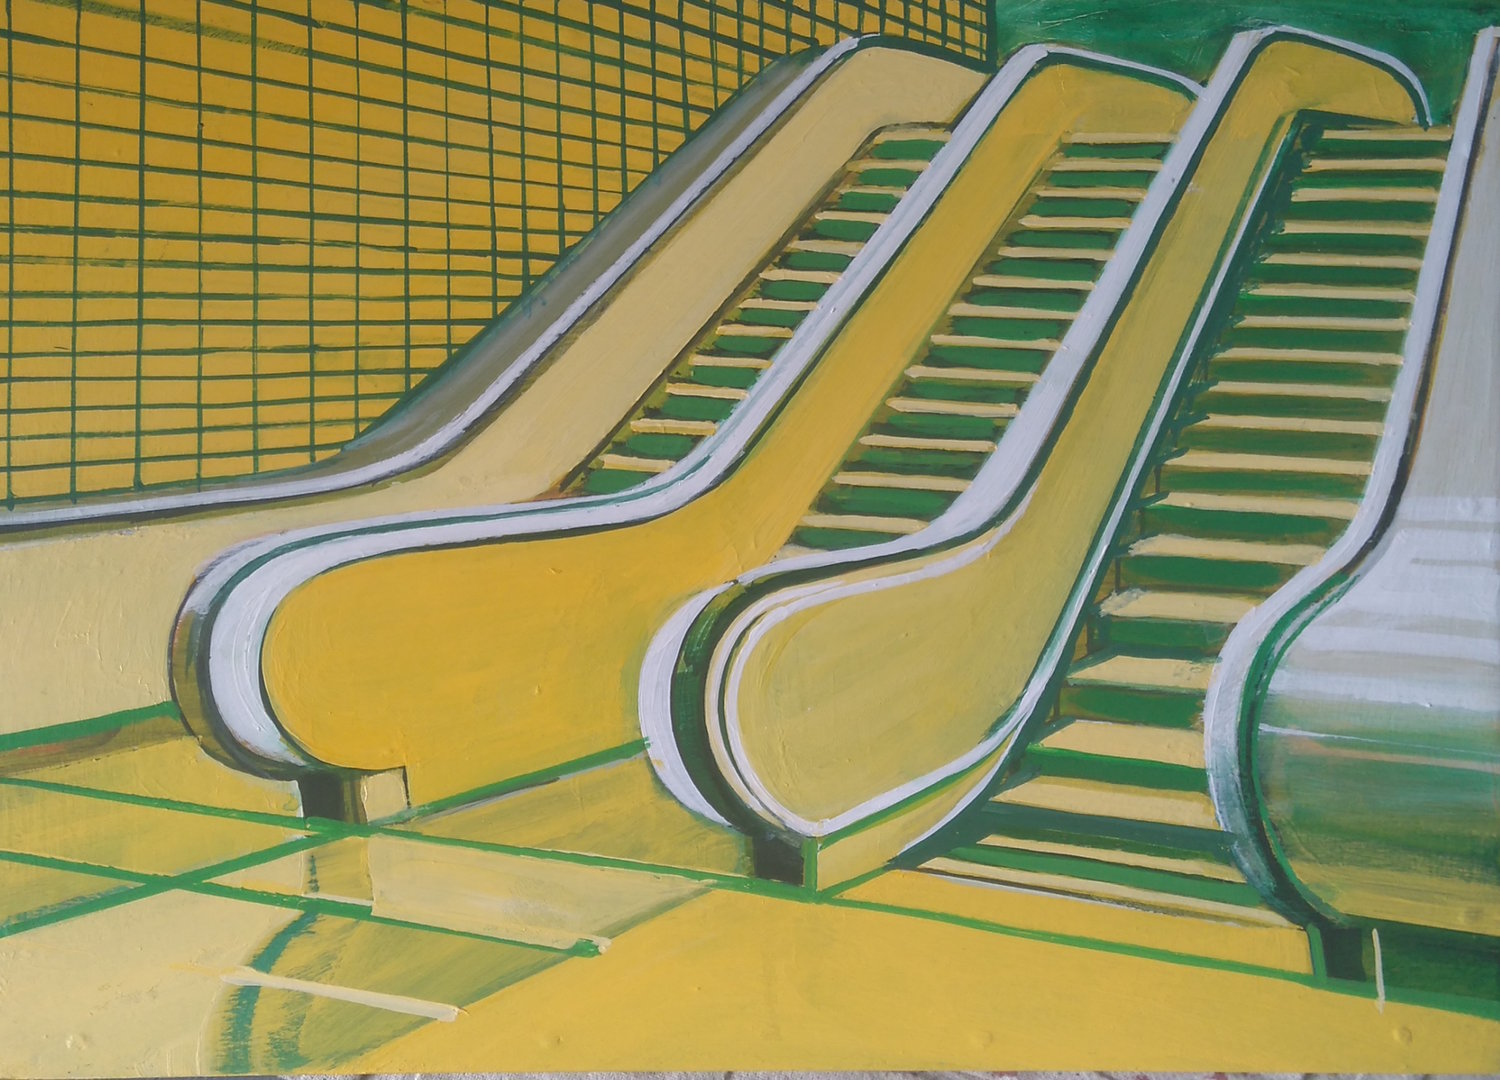 'Yellow Escalator', Paul Crook, Acrylic on panel, 21 x 30 cm